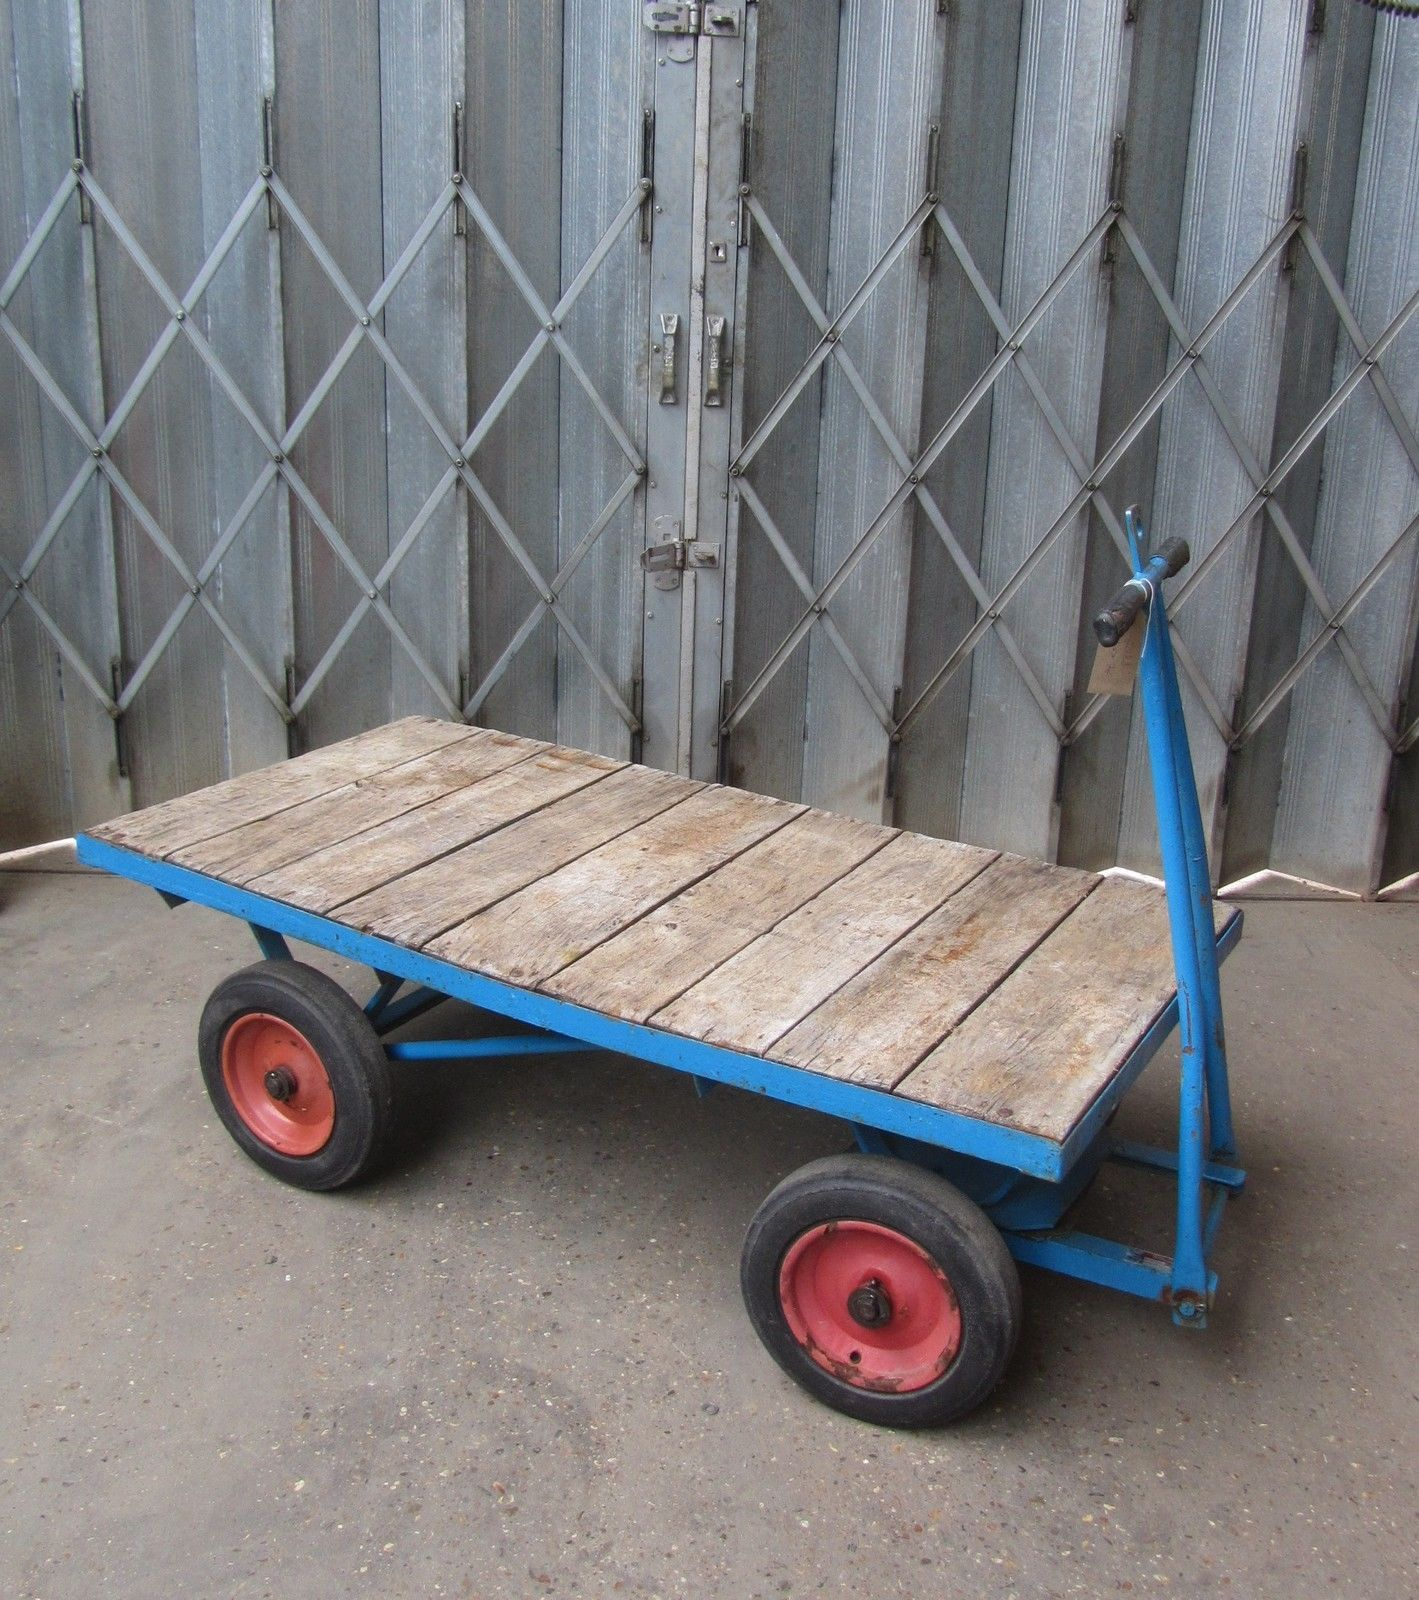 Four Wheel Turntable Trolley Handcart Trailer Bogie 4 Wheel Platform